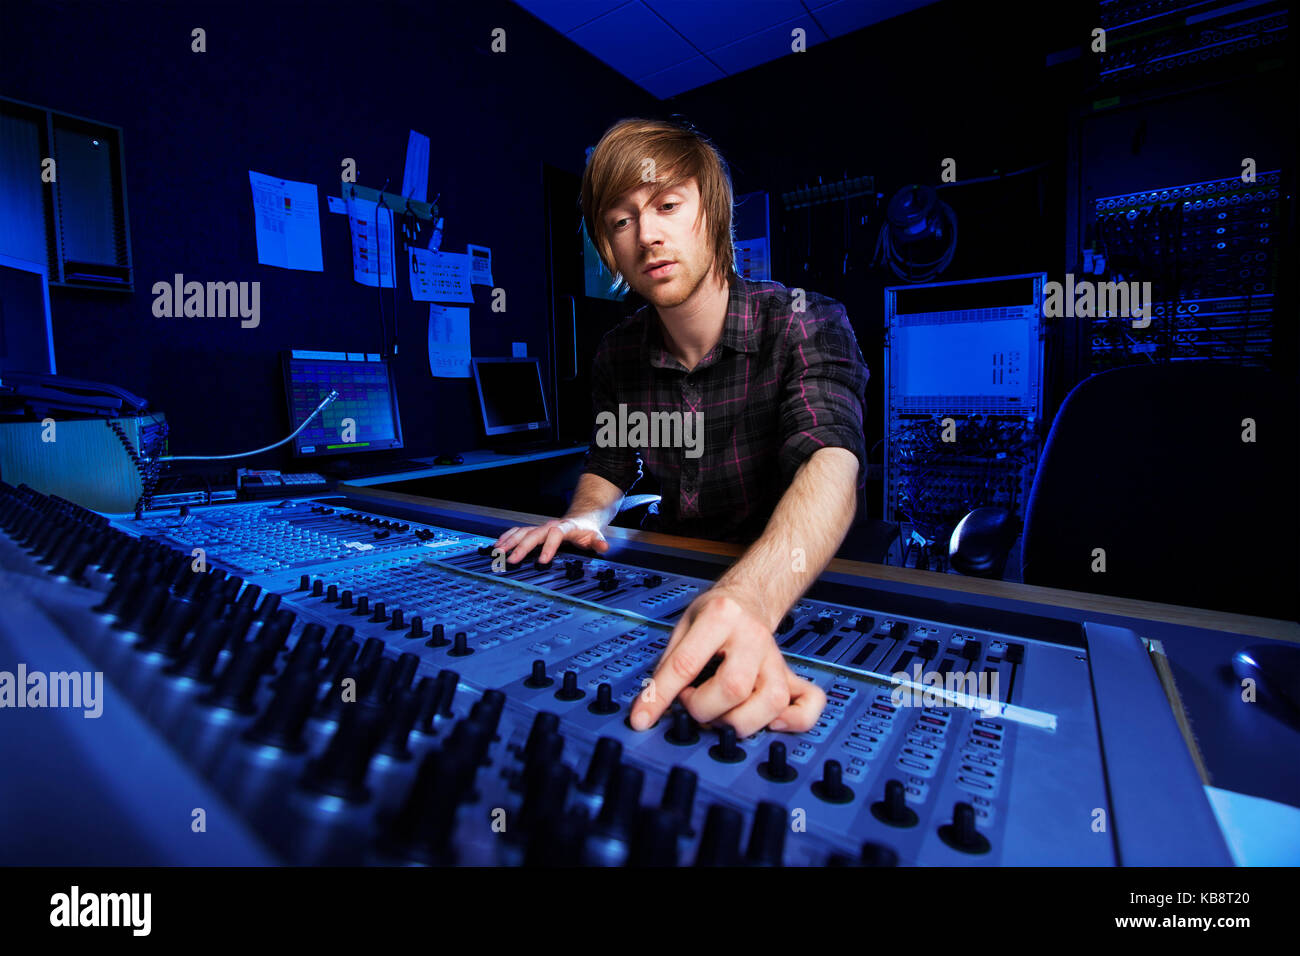 Man using a sound mixing desk in a recording studio - Stock Image